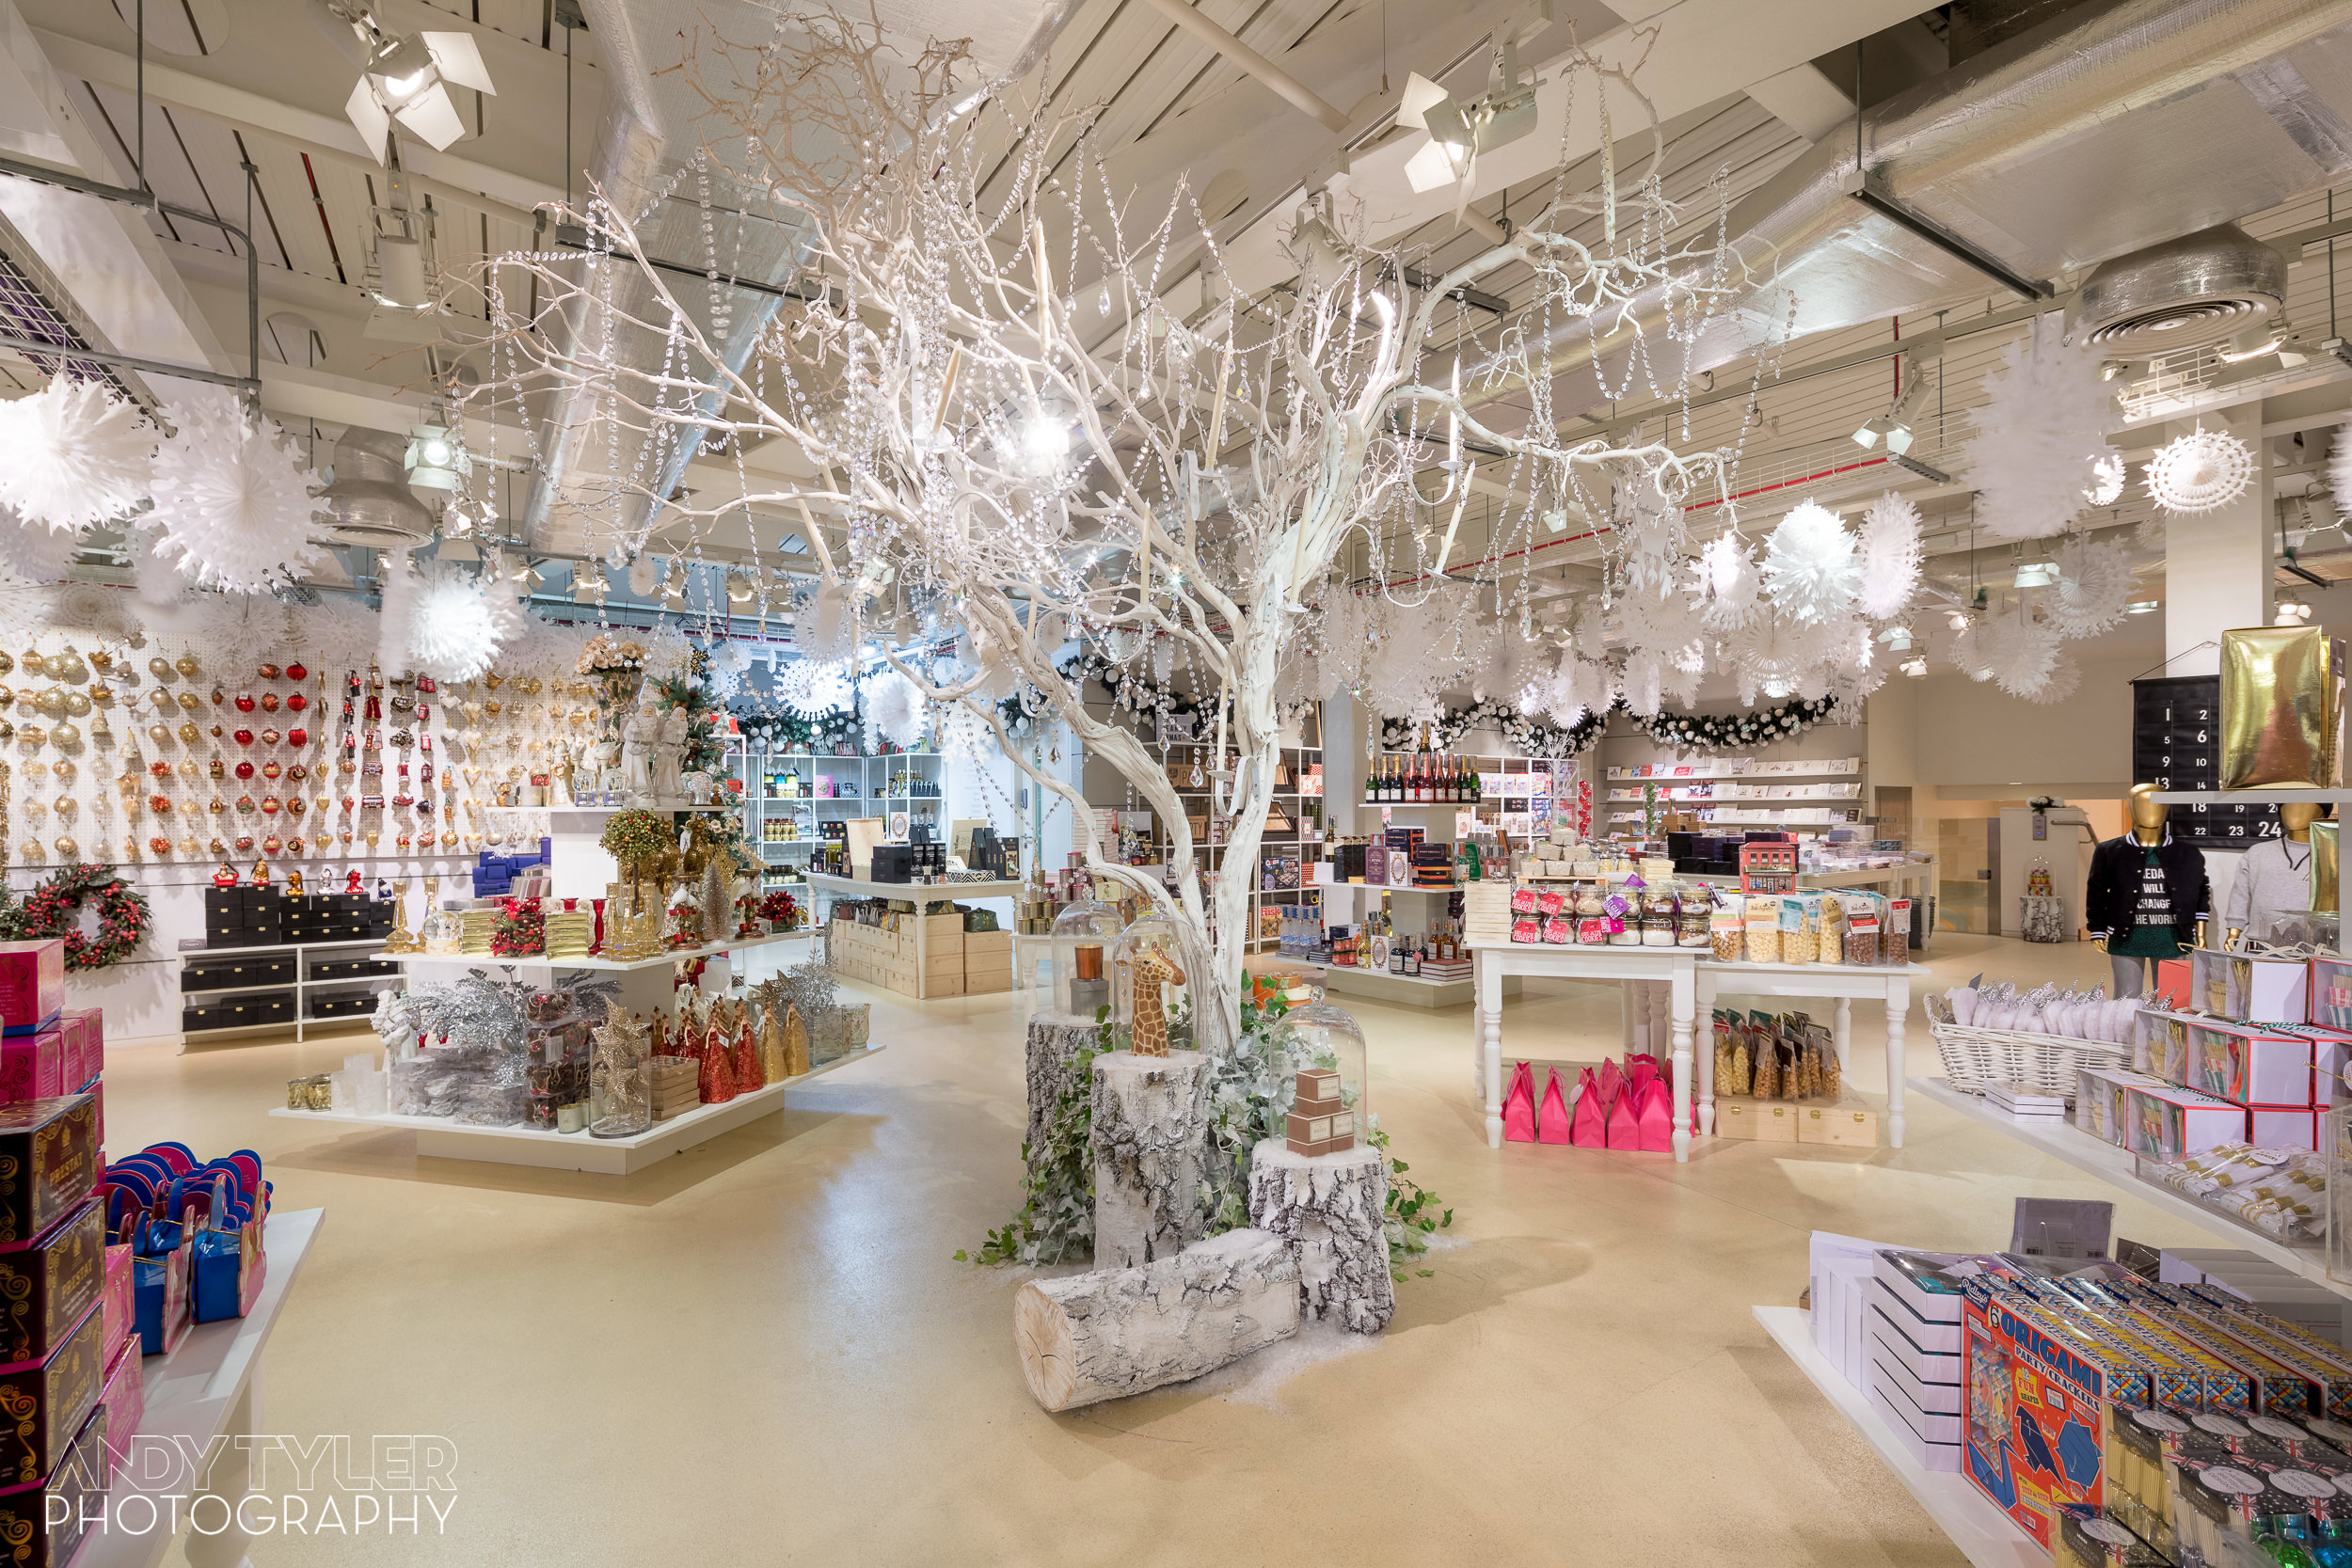 Andy_Tyler_Photography_Luxury_Retail_Interior_006_Andy_Tyler_Photography_048-5DB_7667.jpg